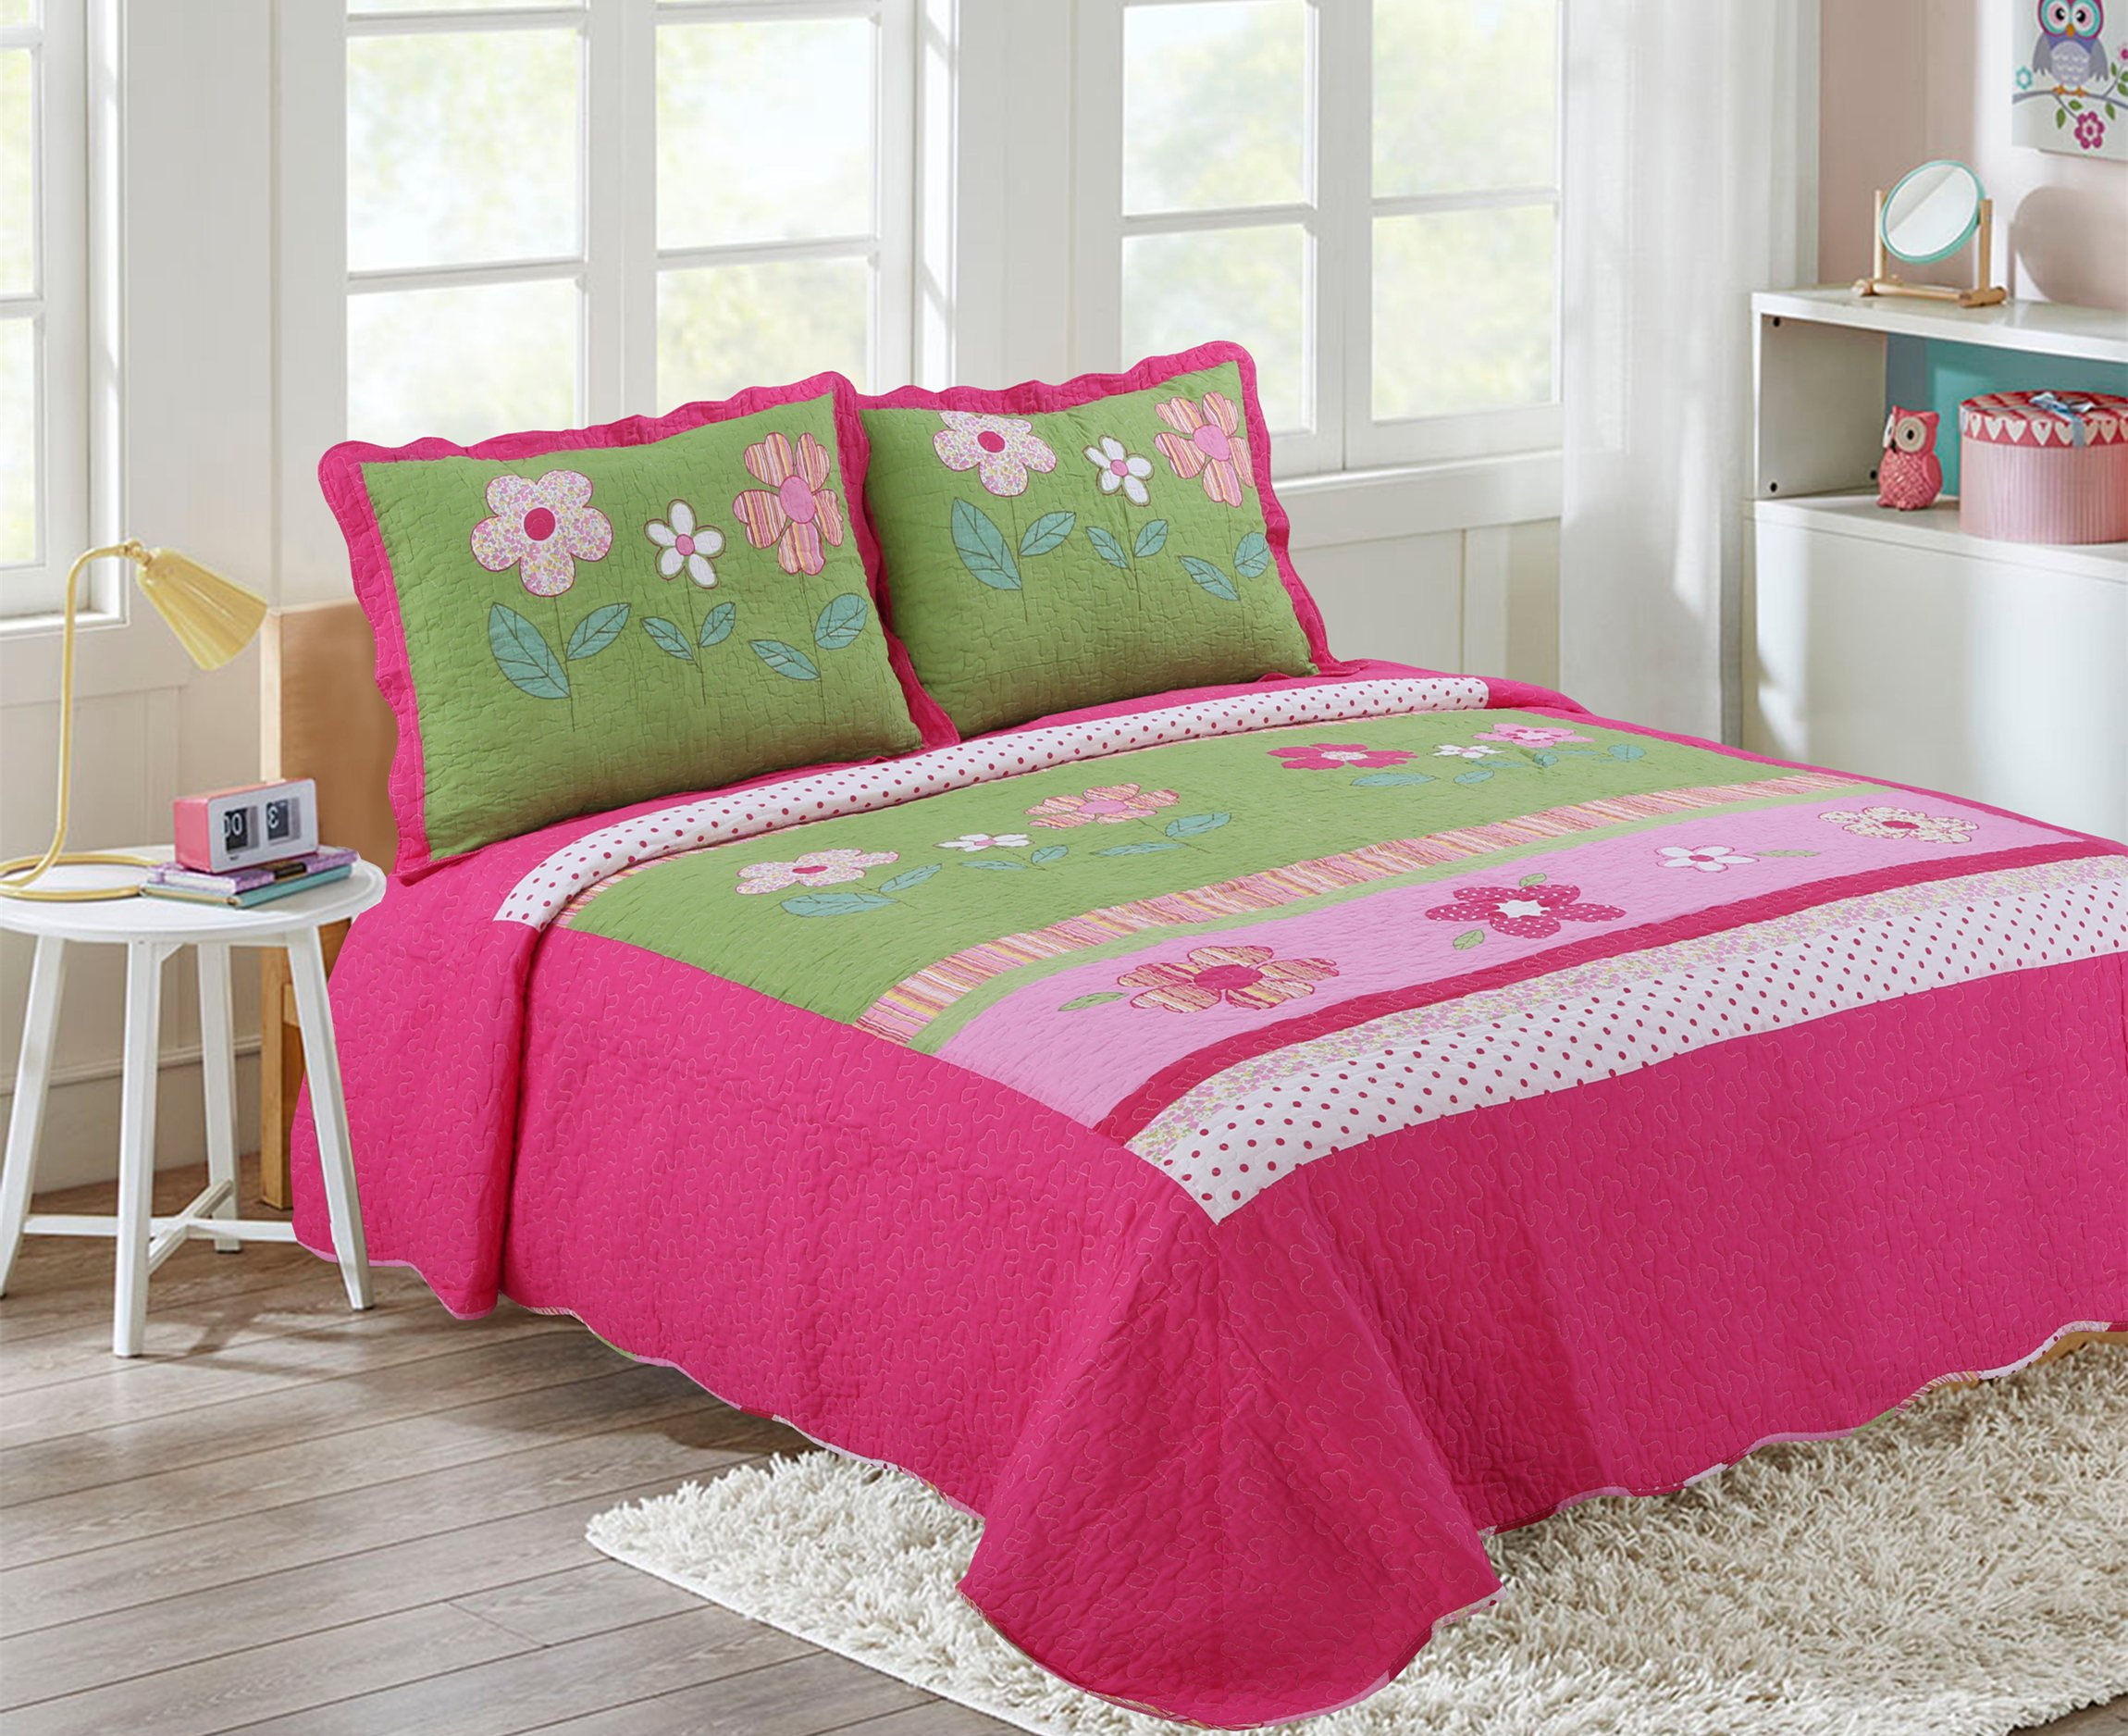 Buy Hnnsi Girls Flower Kids Quilt Bedspread Set Queen Size 3pcs 100 Cotton Girls Comforter Kids Bedding Sets Kids Girls Bed Sheet Sets Queen Pink Floral In Cheap Price On Alibaba Com